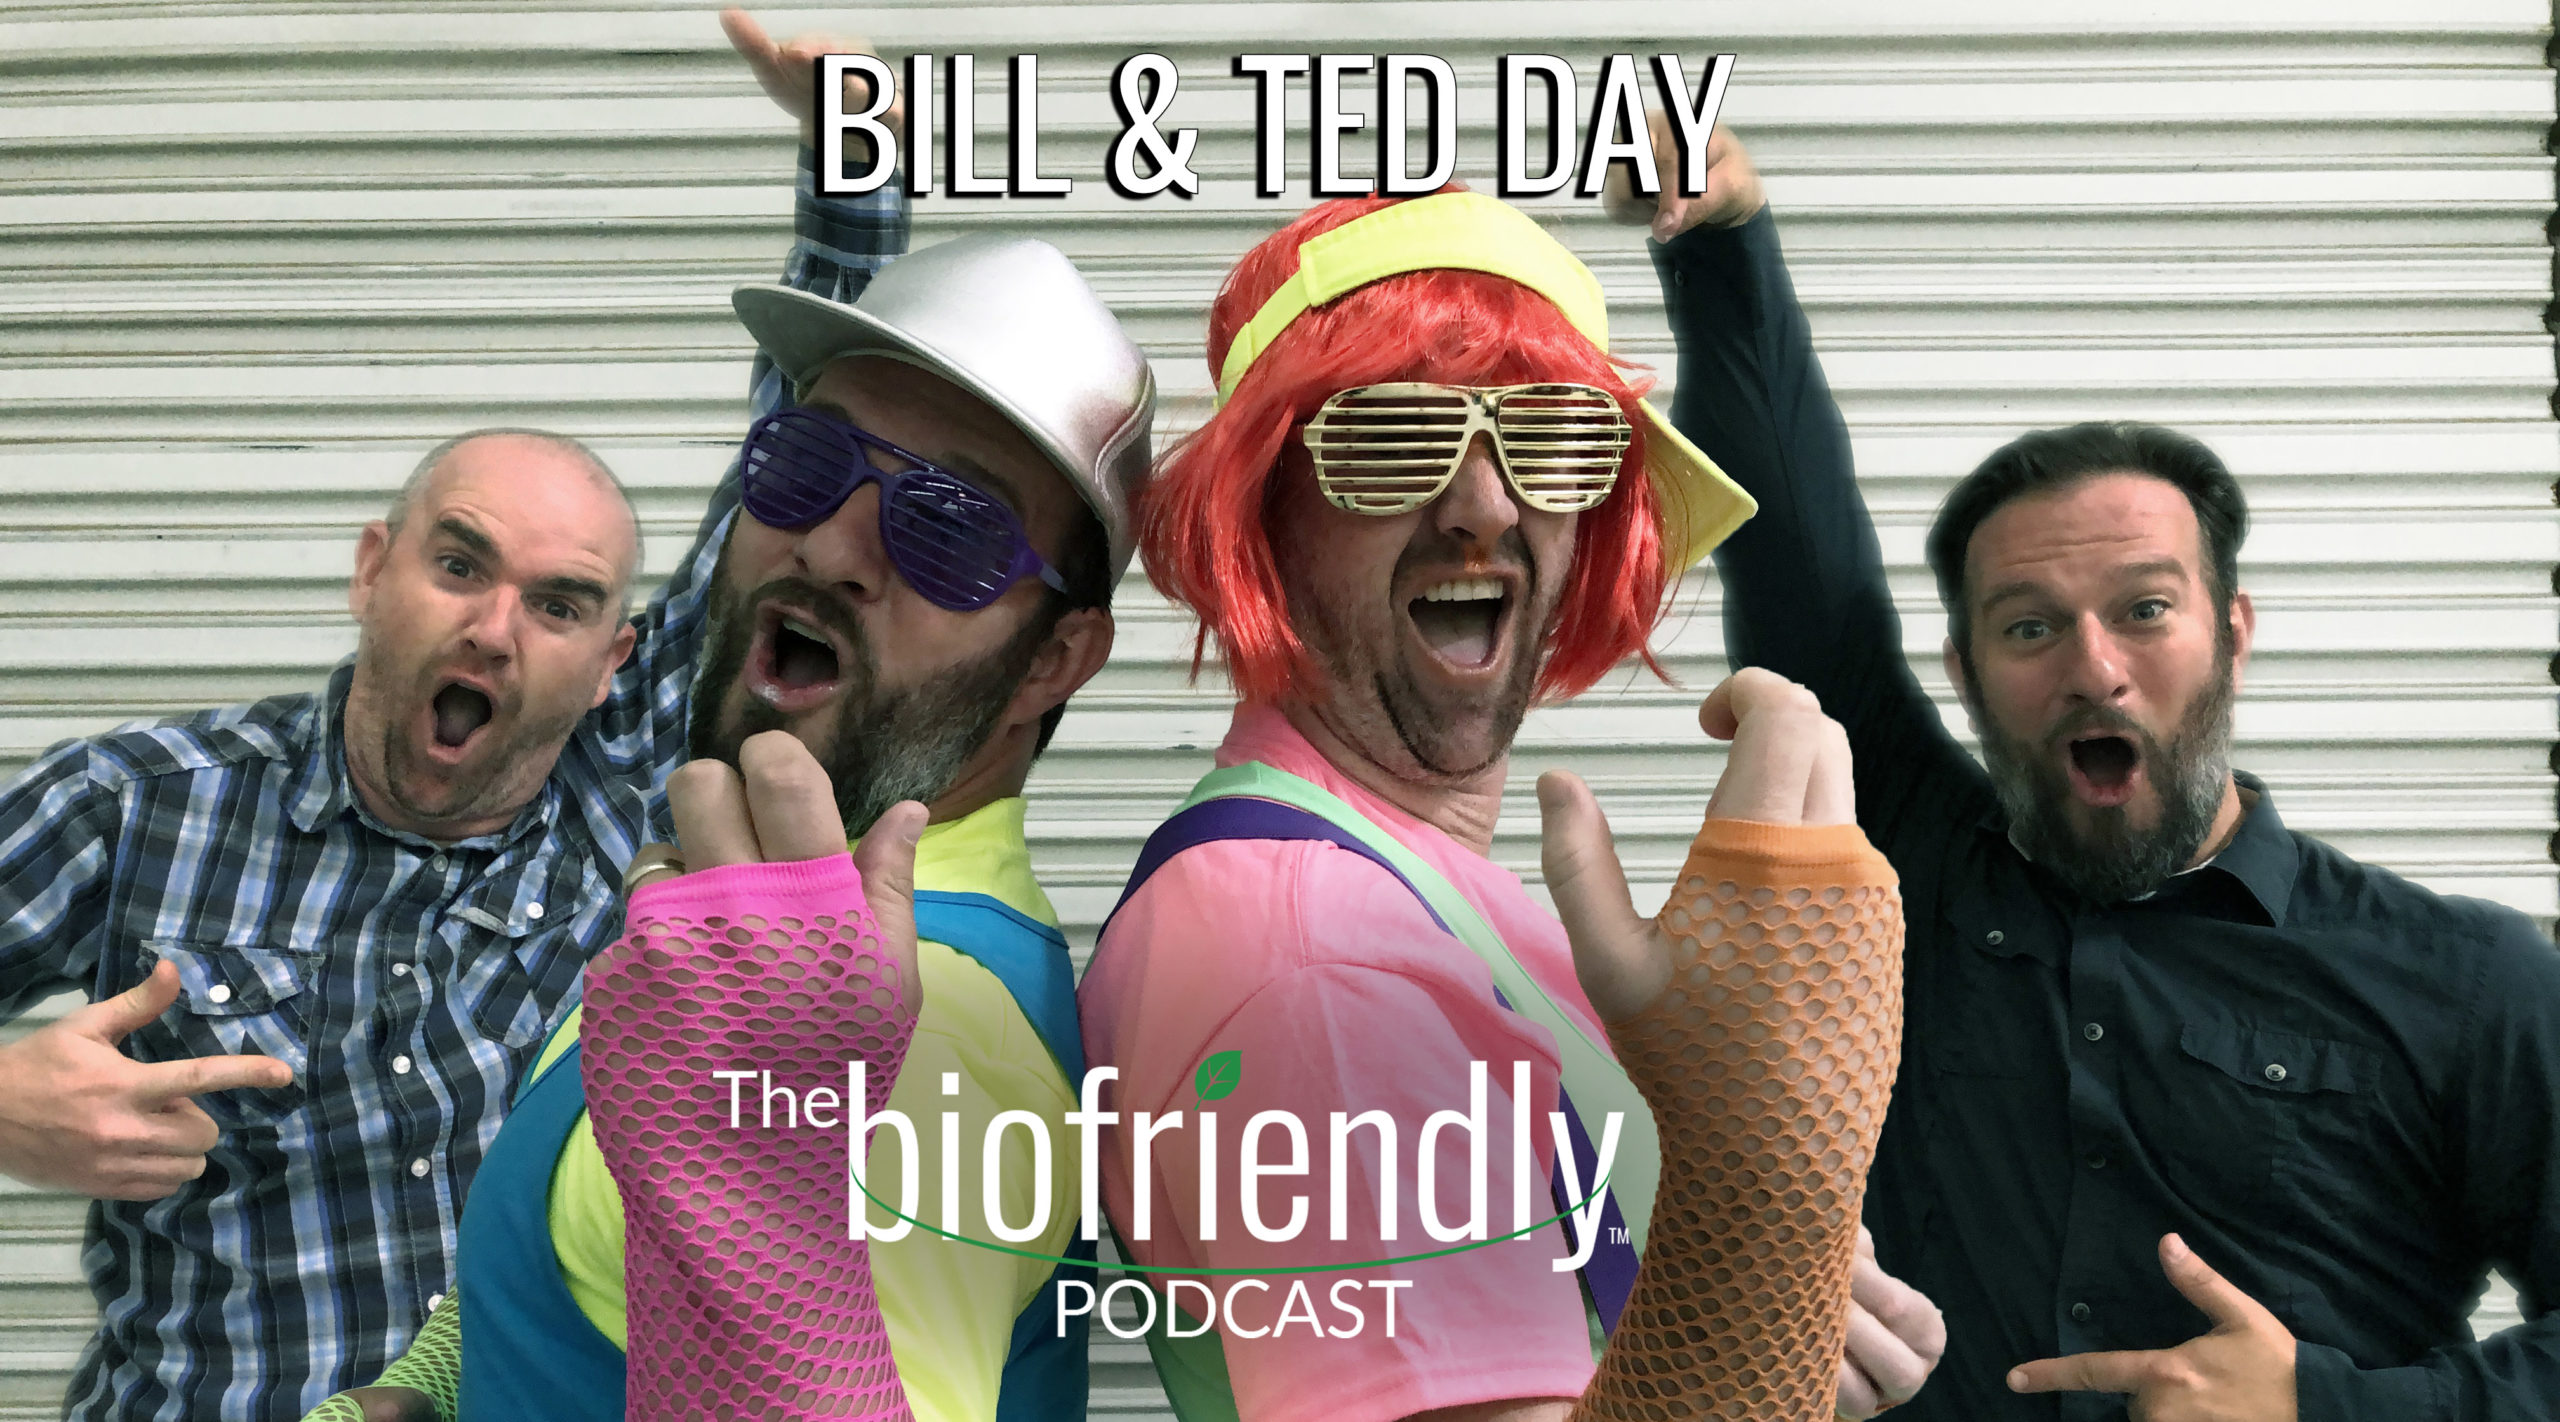 The Biofriendly Podcast - Episode 17 - Bill And Ted Day